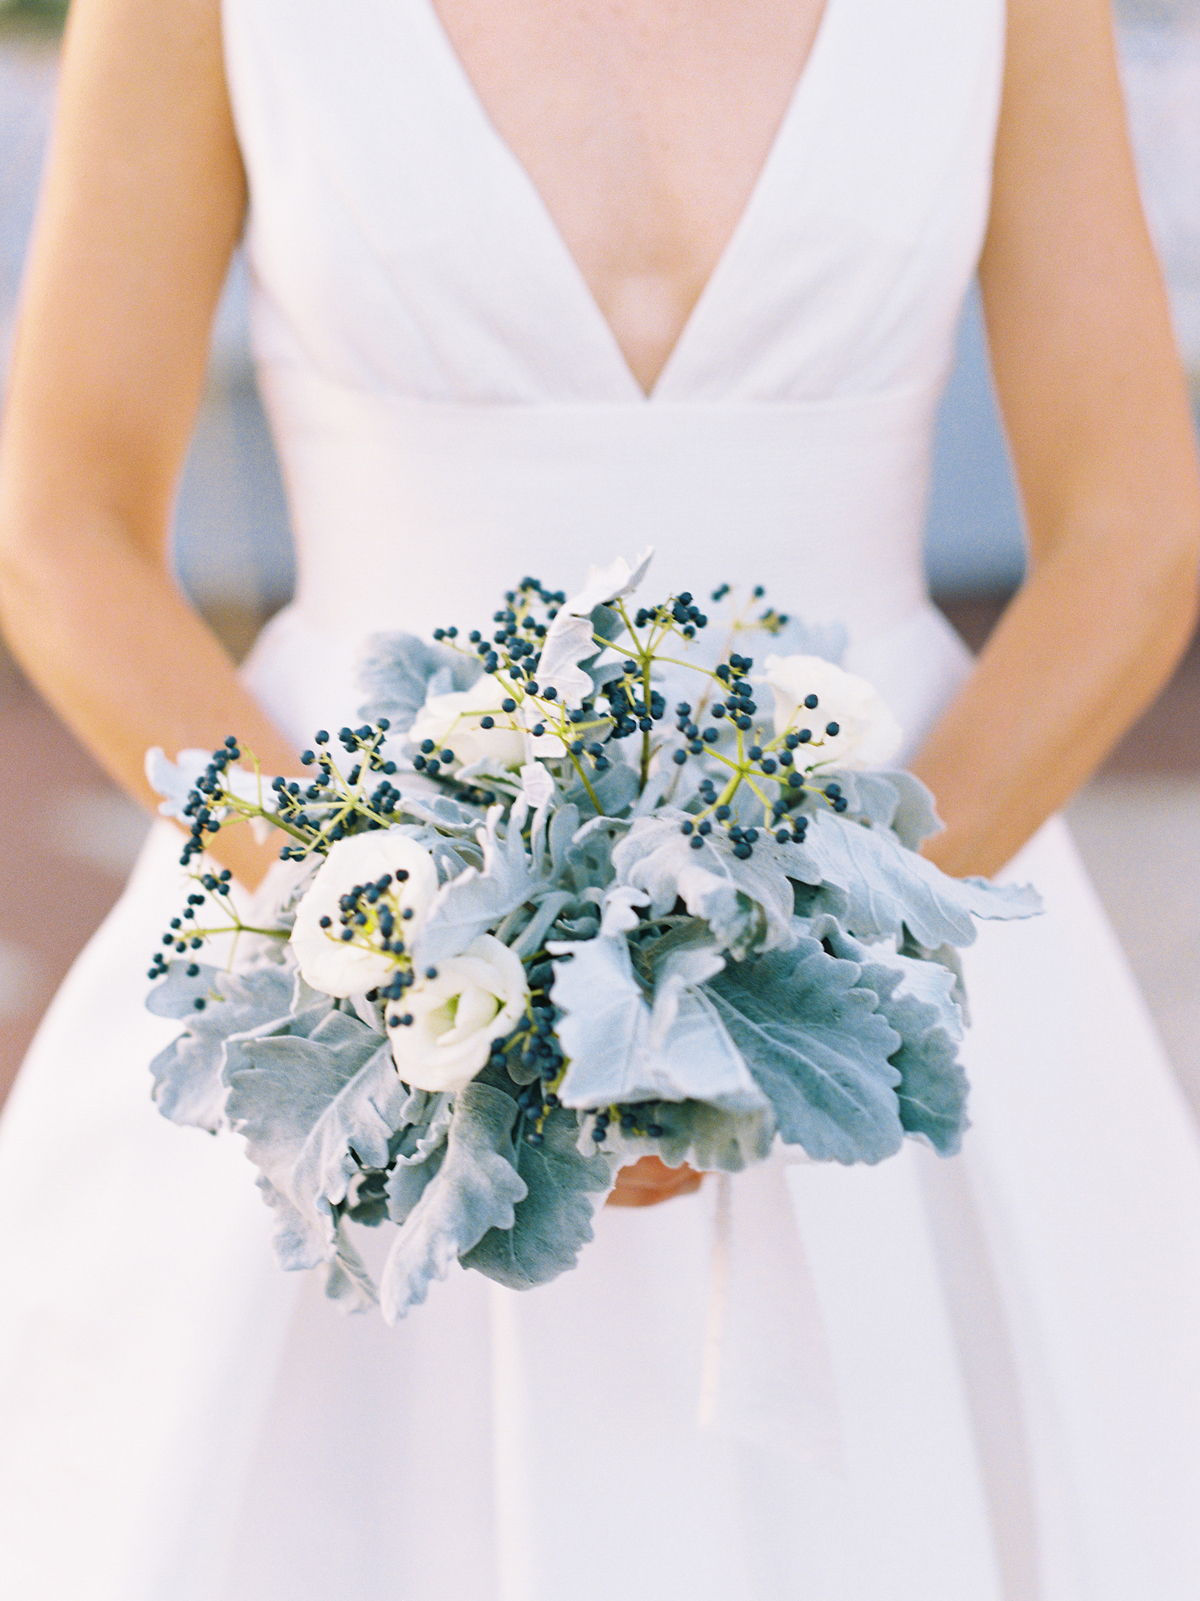 blue and white floral forget-me-not bouquet with privet berries